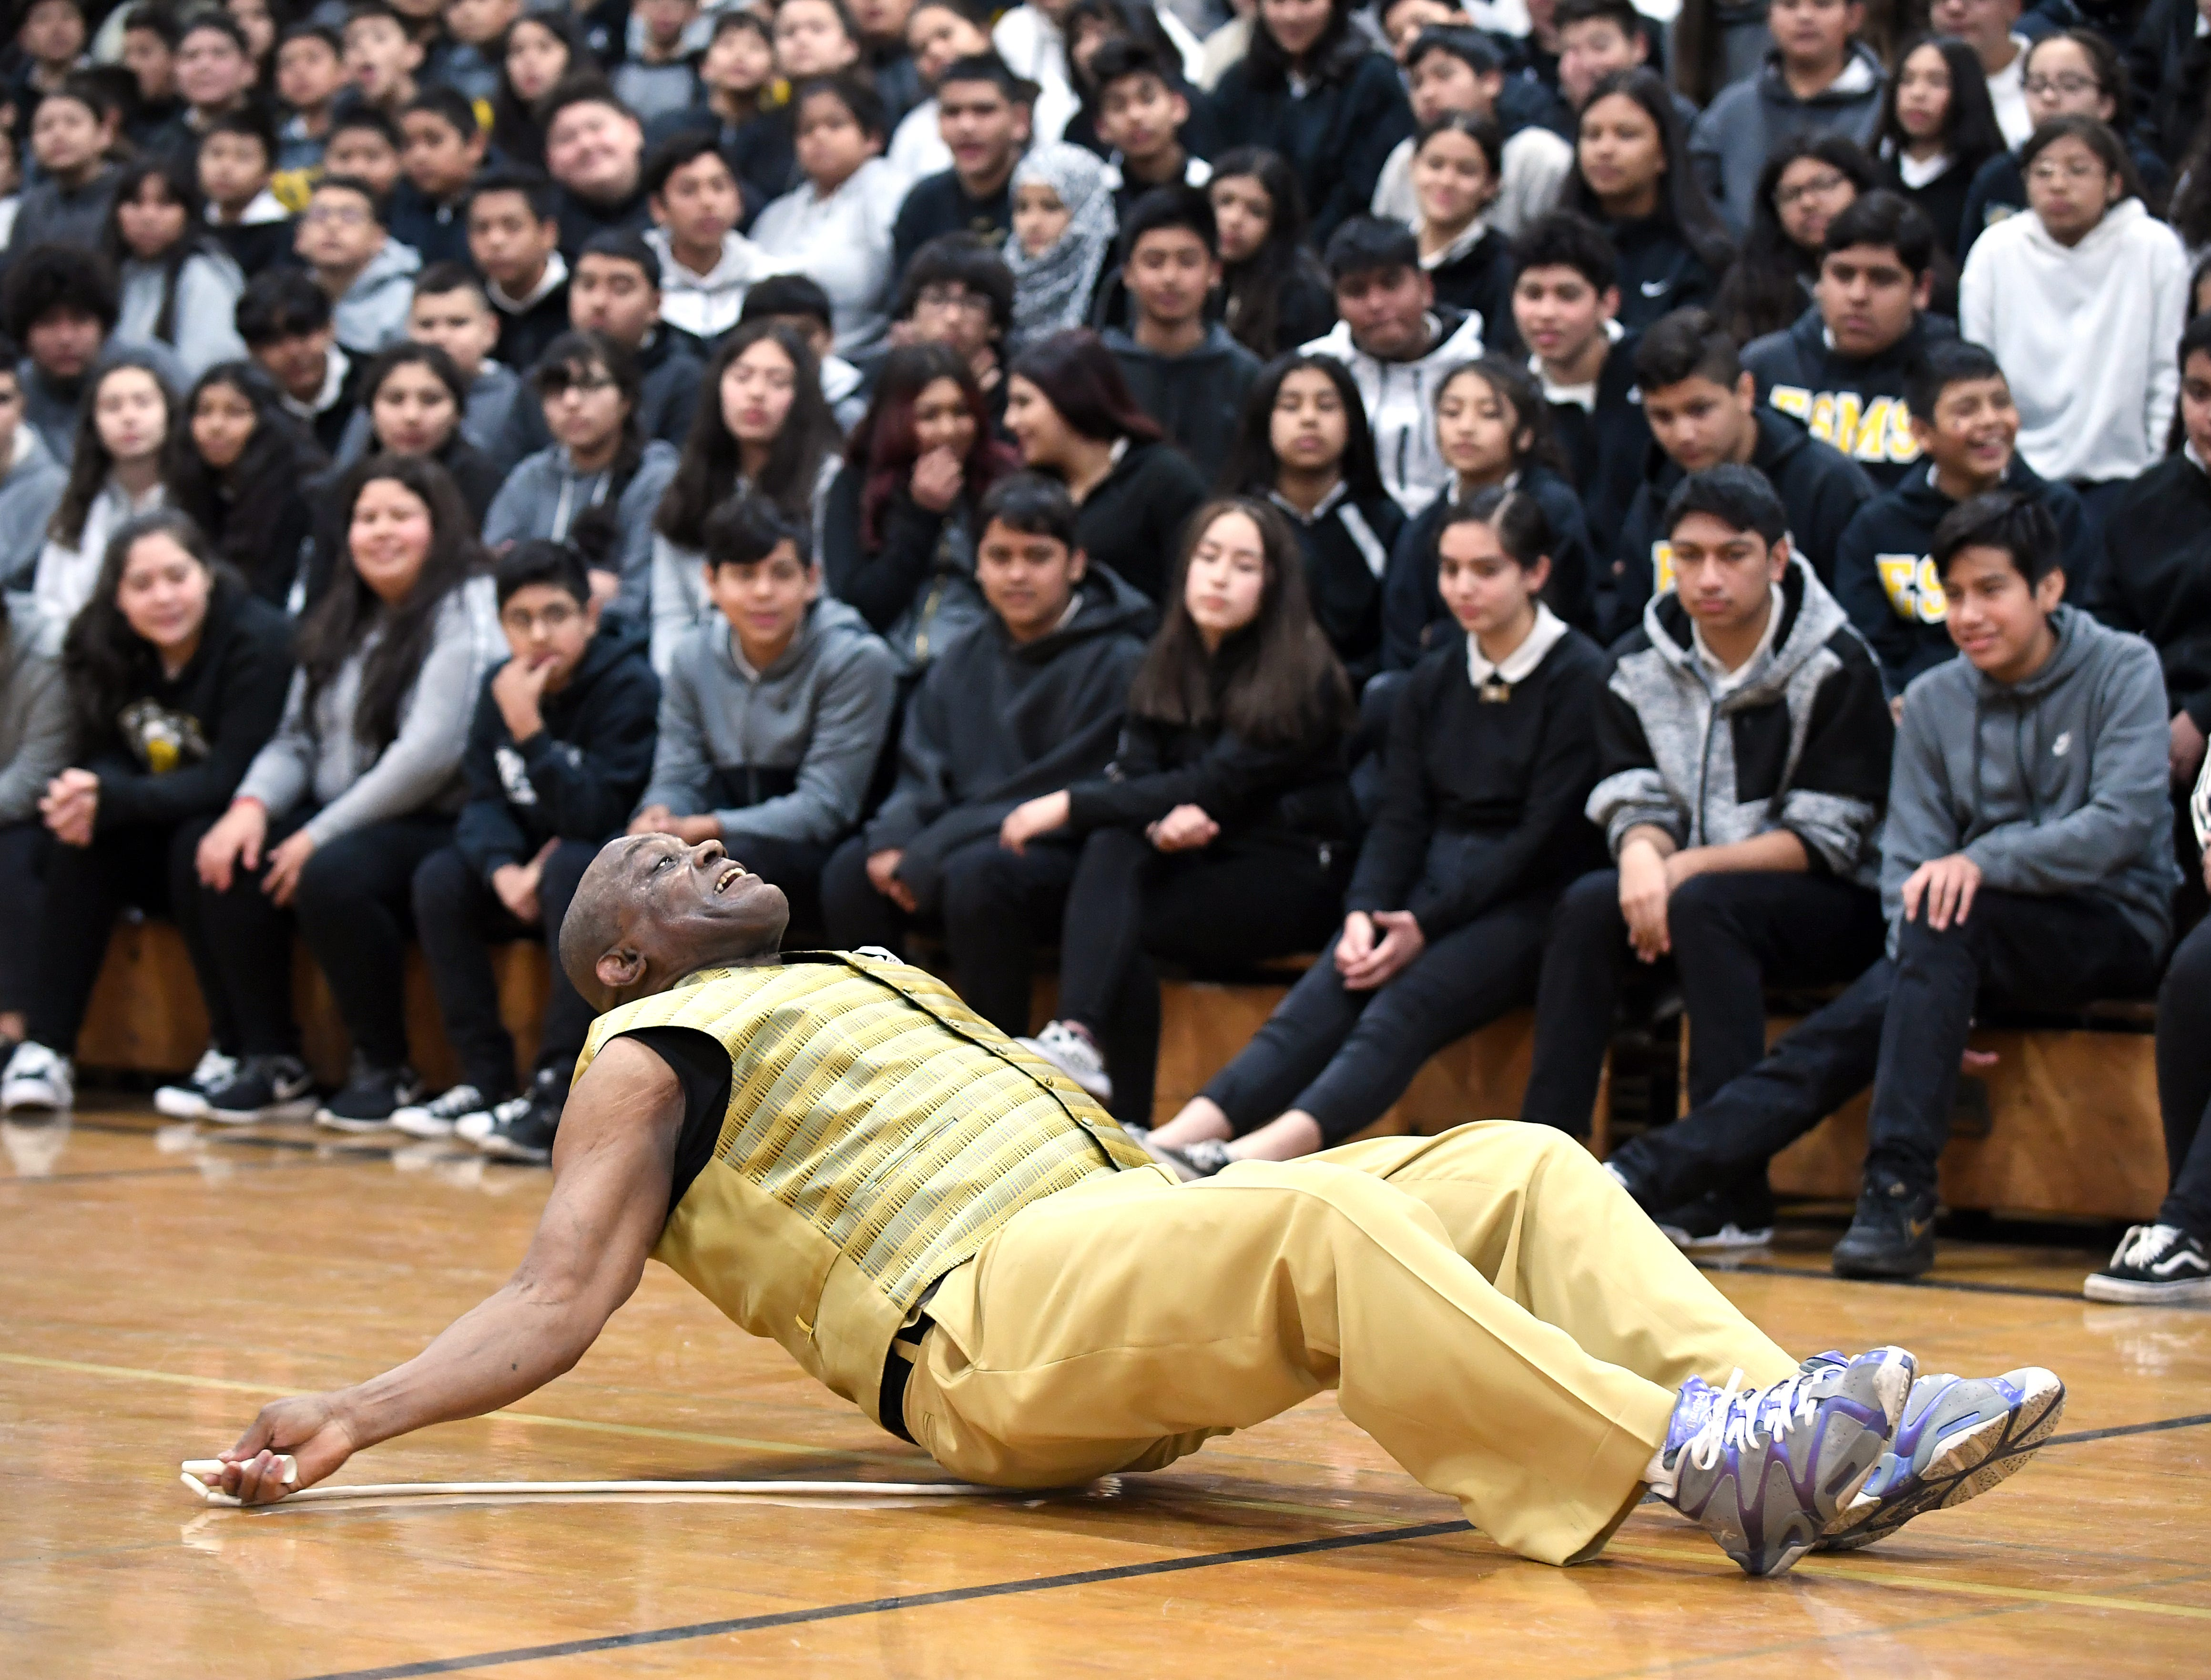 James Thompson perform with a jump rope at El Sausal Middle School on Feb. 21, 2019.